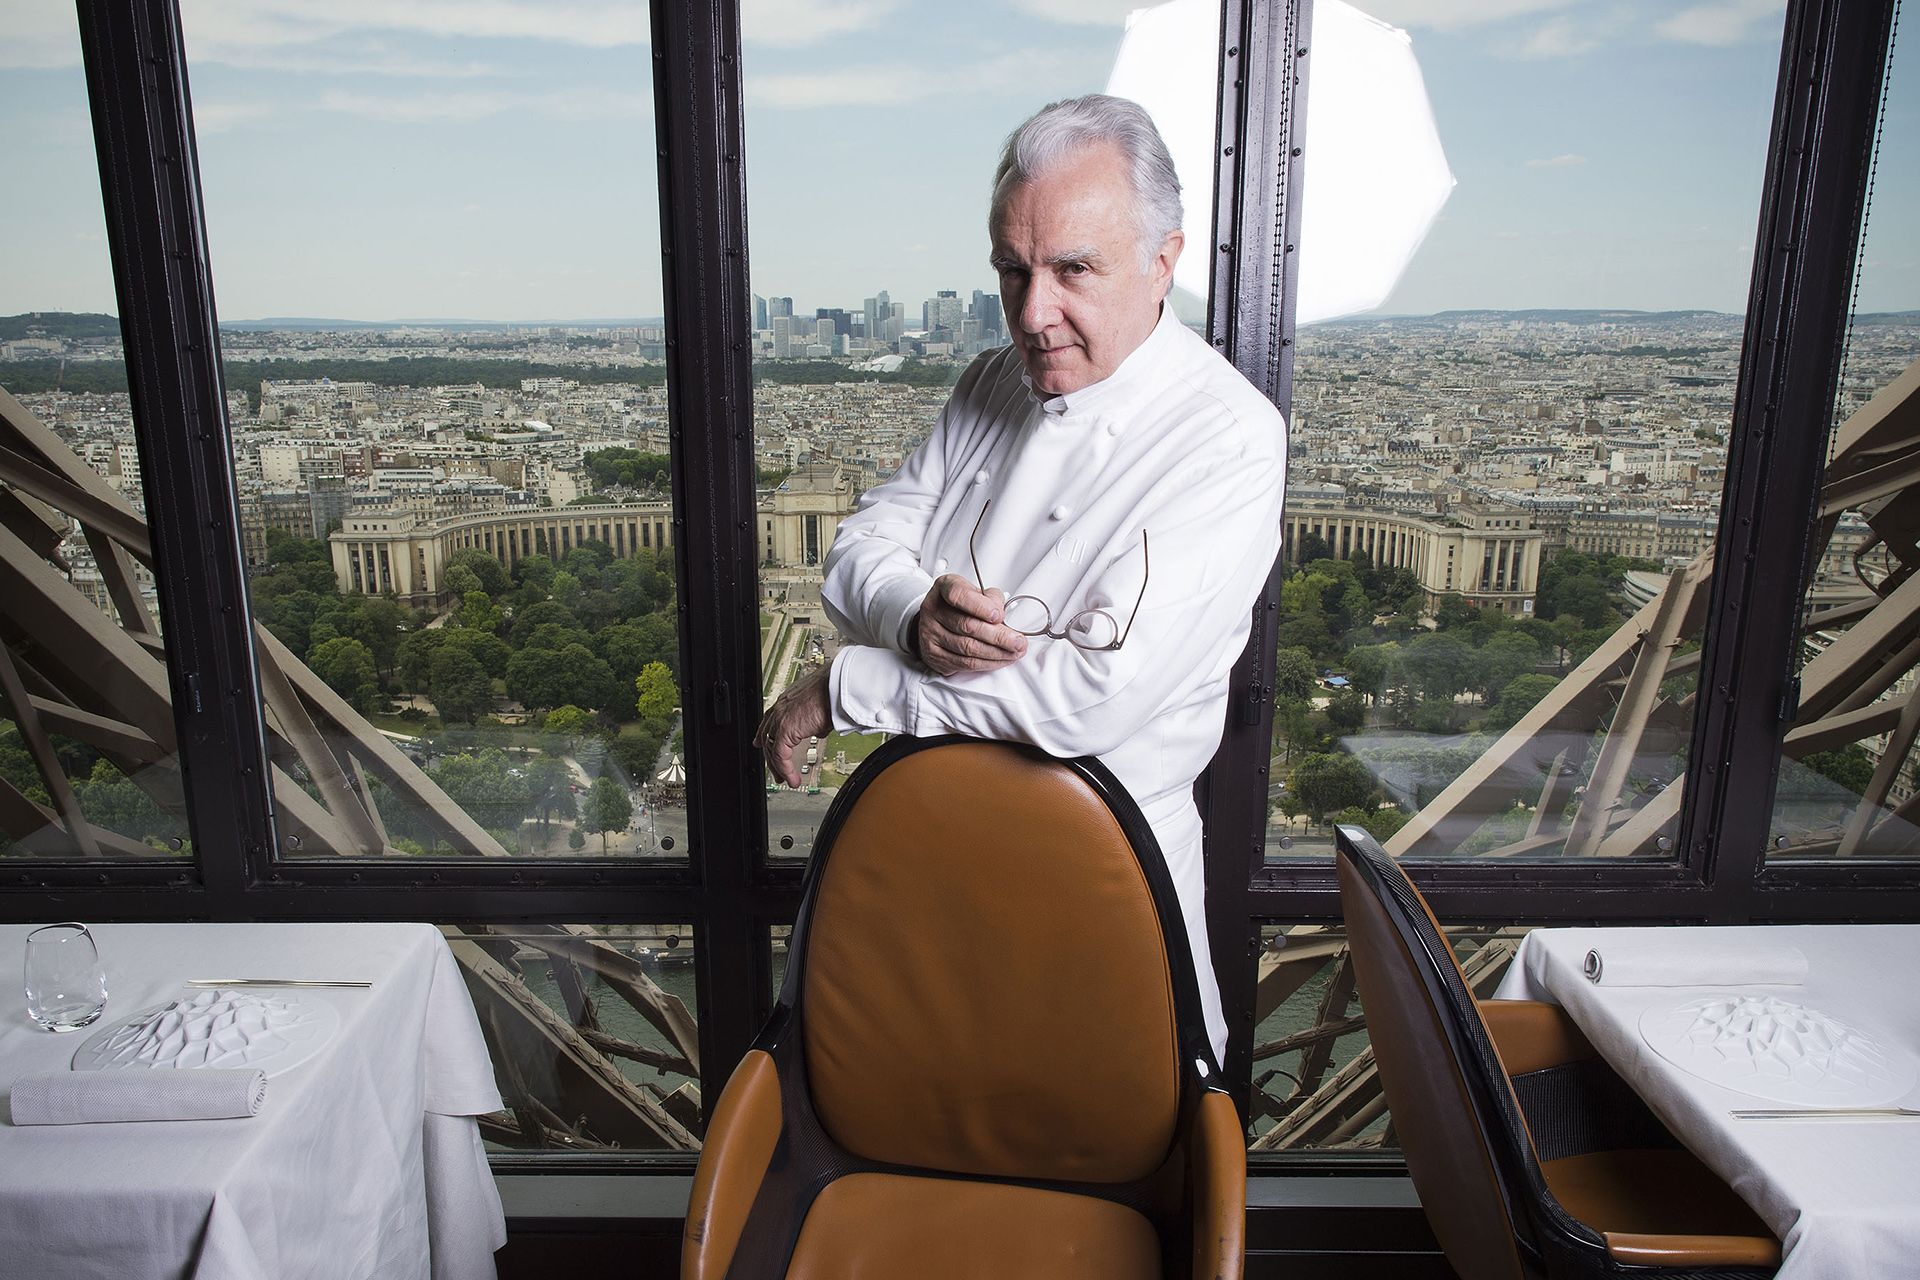 Ousted Eiffel Tower chef Ducasse sharpens knives for rivals